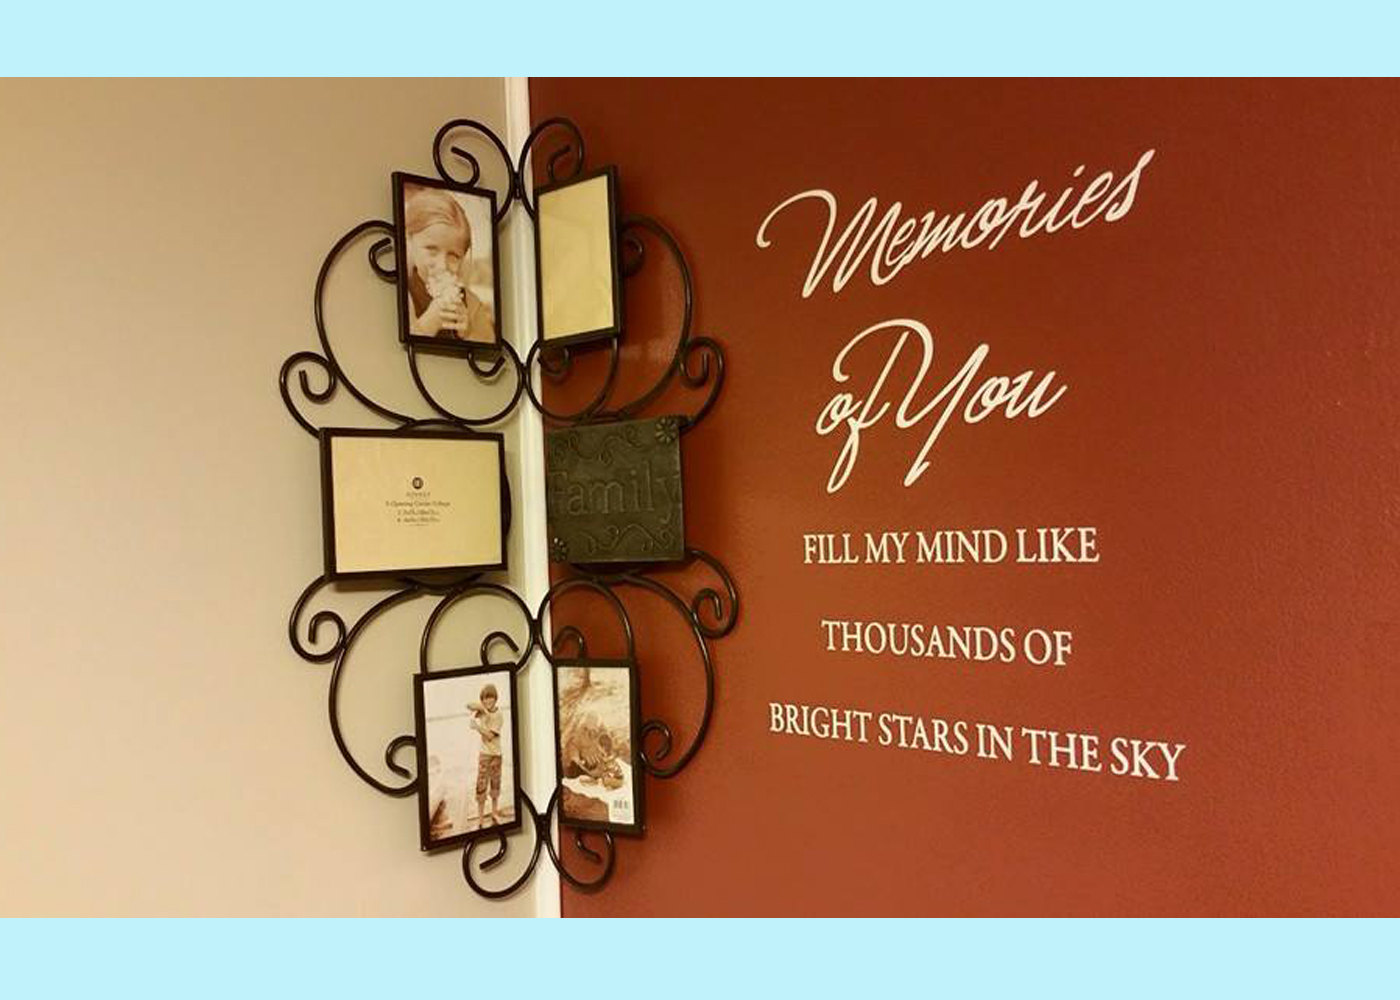 symp1-d-sympathy-wall-decal-sticker-beige-memories-quote.jpg